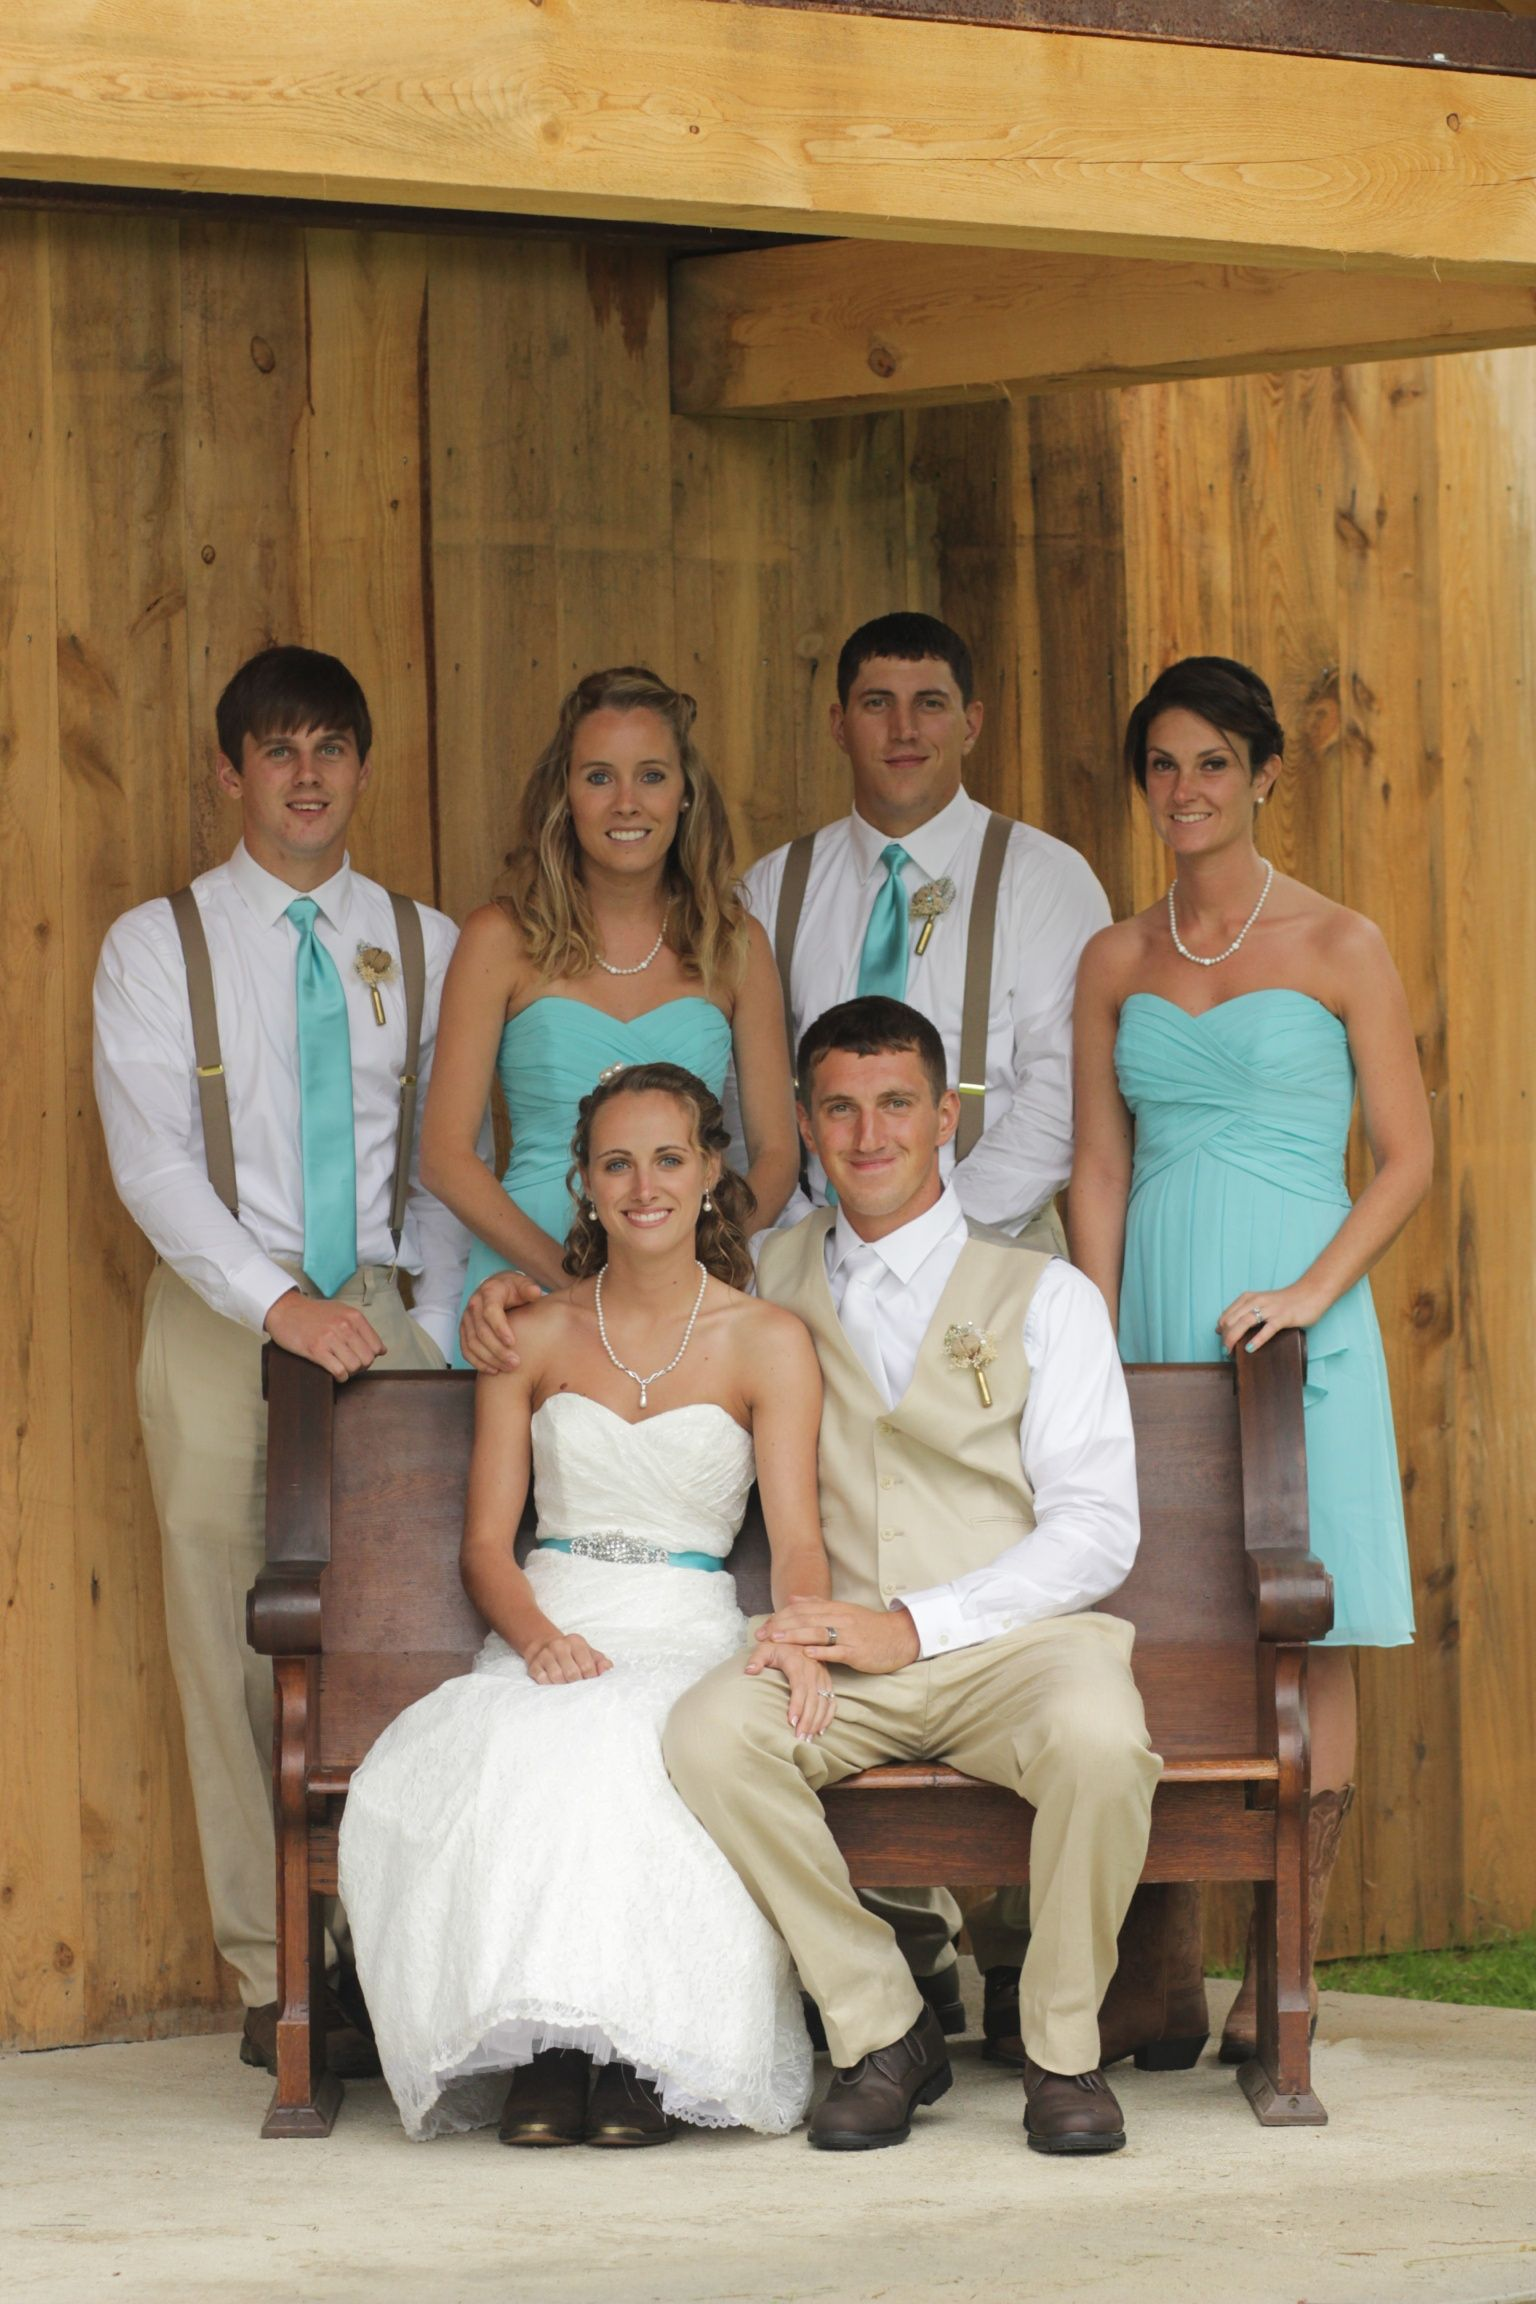 Small wedding parties with casual clothes | Backyard ...